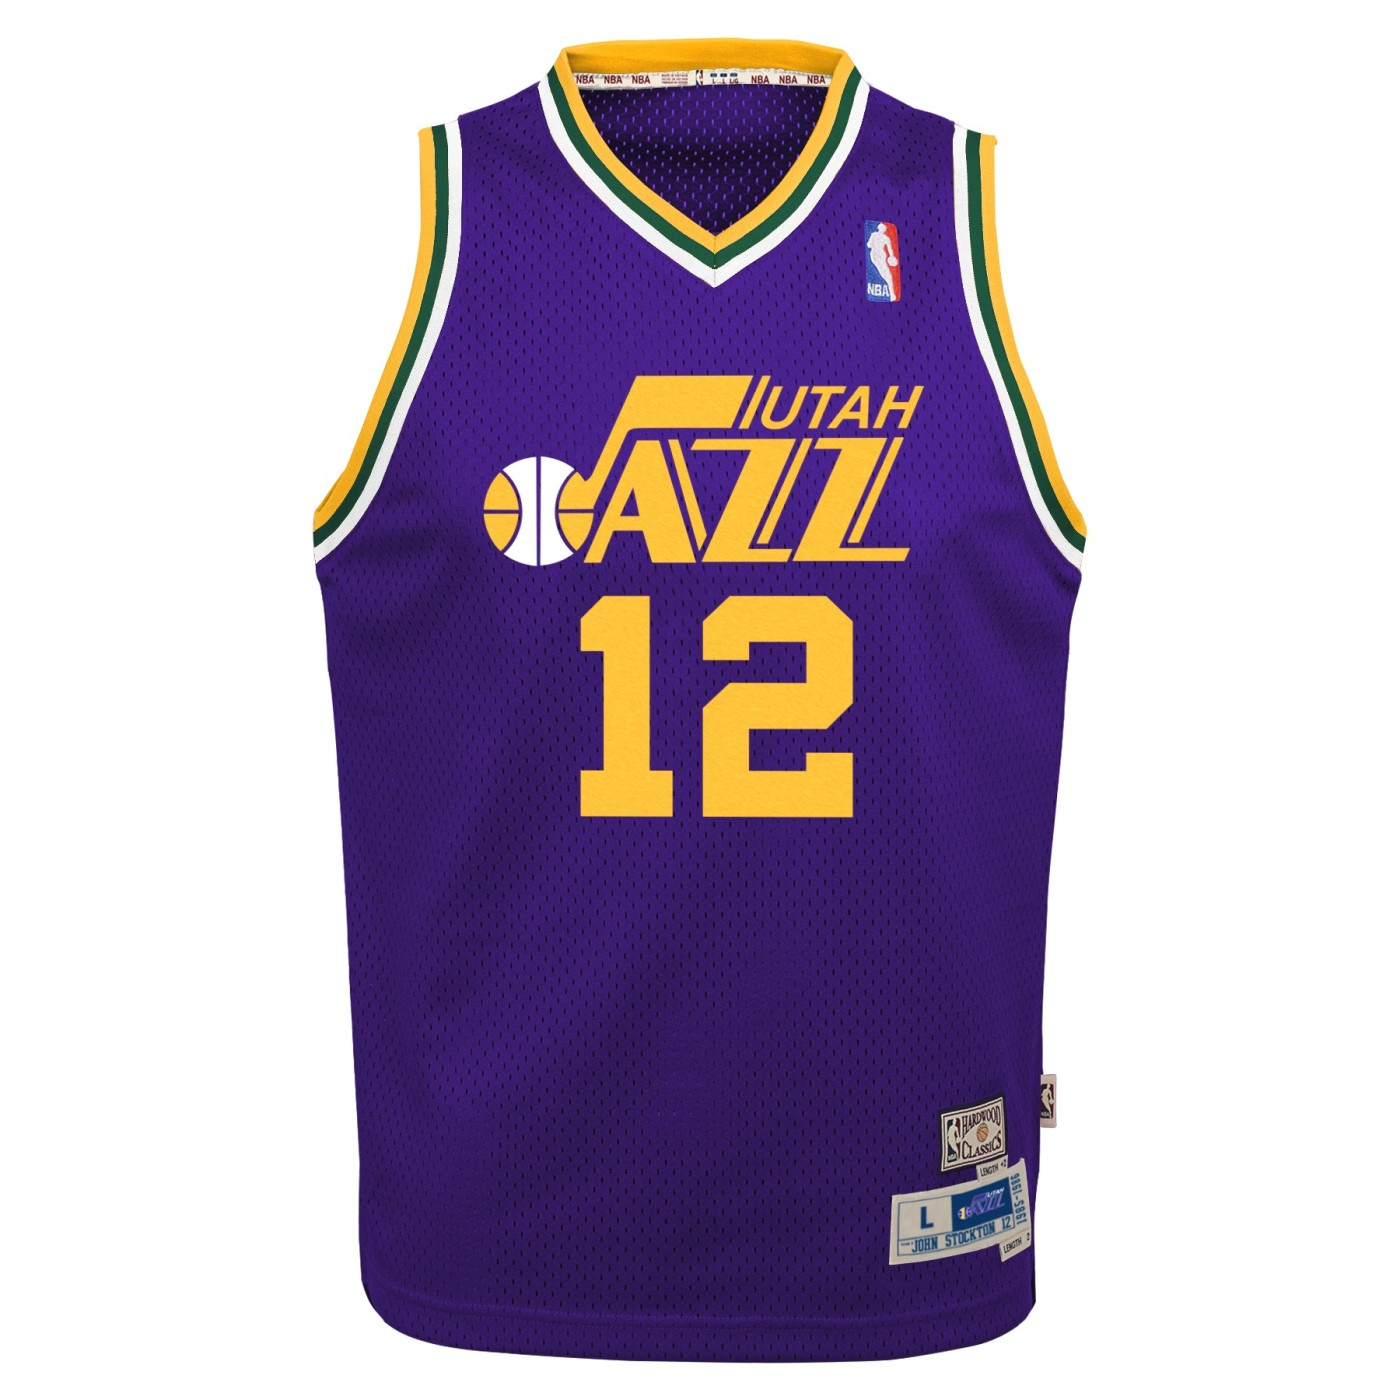 90c5c96e331 ... john stockton utah jazz nba youth throwback swingman jersey